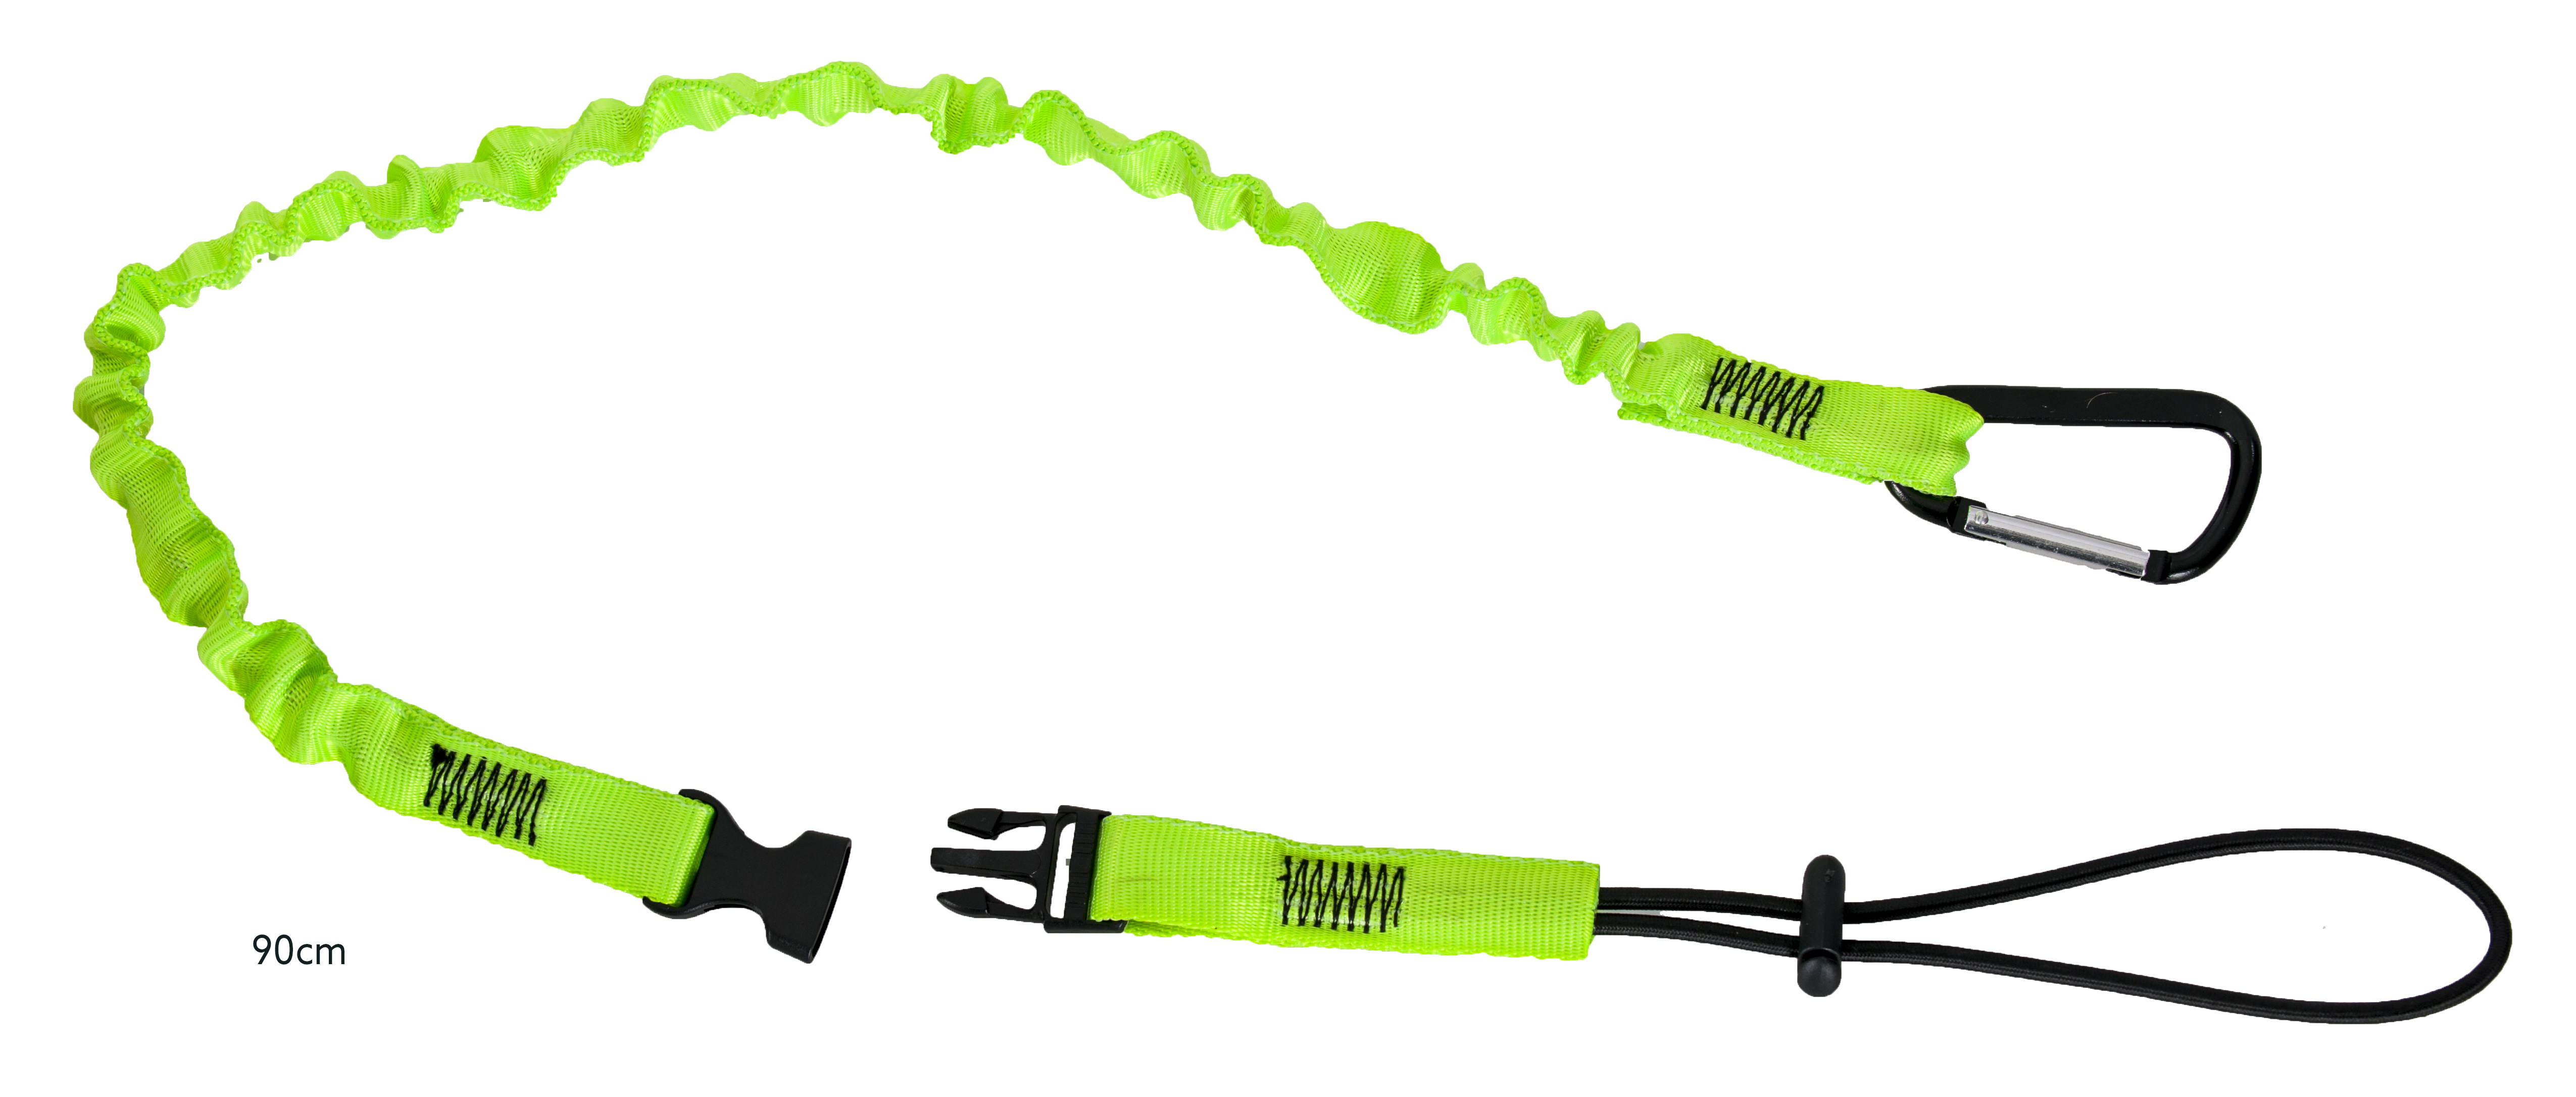 Northrock Safety Quick Connect Tool Lanyard Singapore Scaffold Tool Tethers Singapore